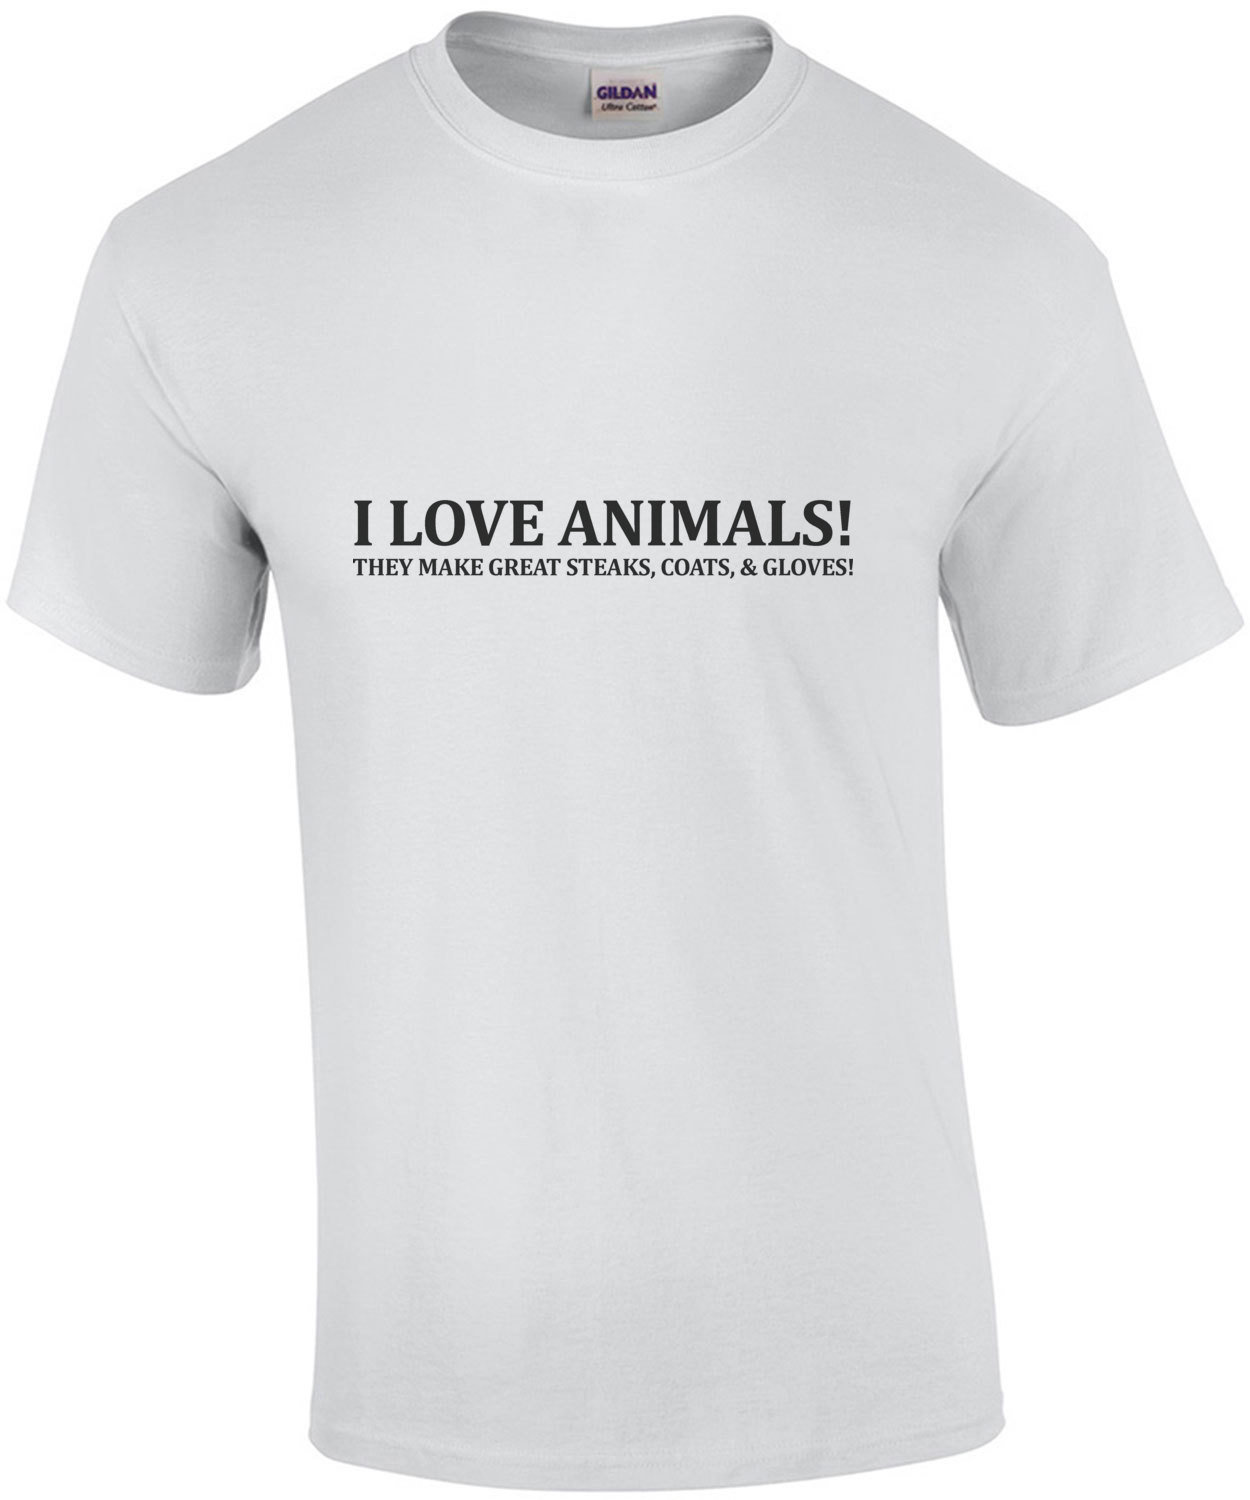 I love animals - they make great steaks, coats, and gloves . Sarcastic T-Shirt